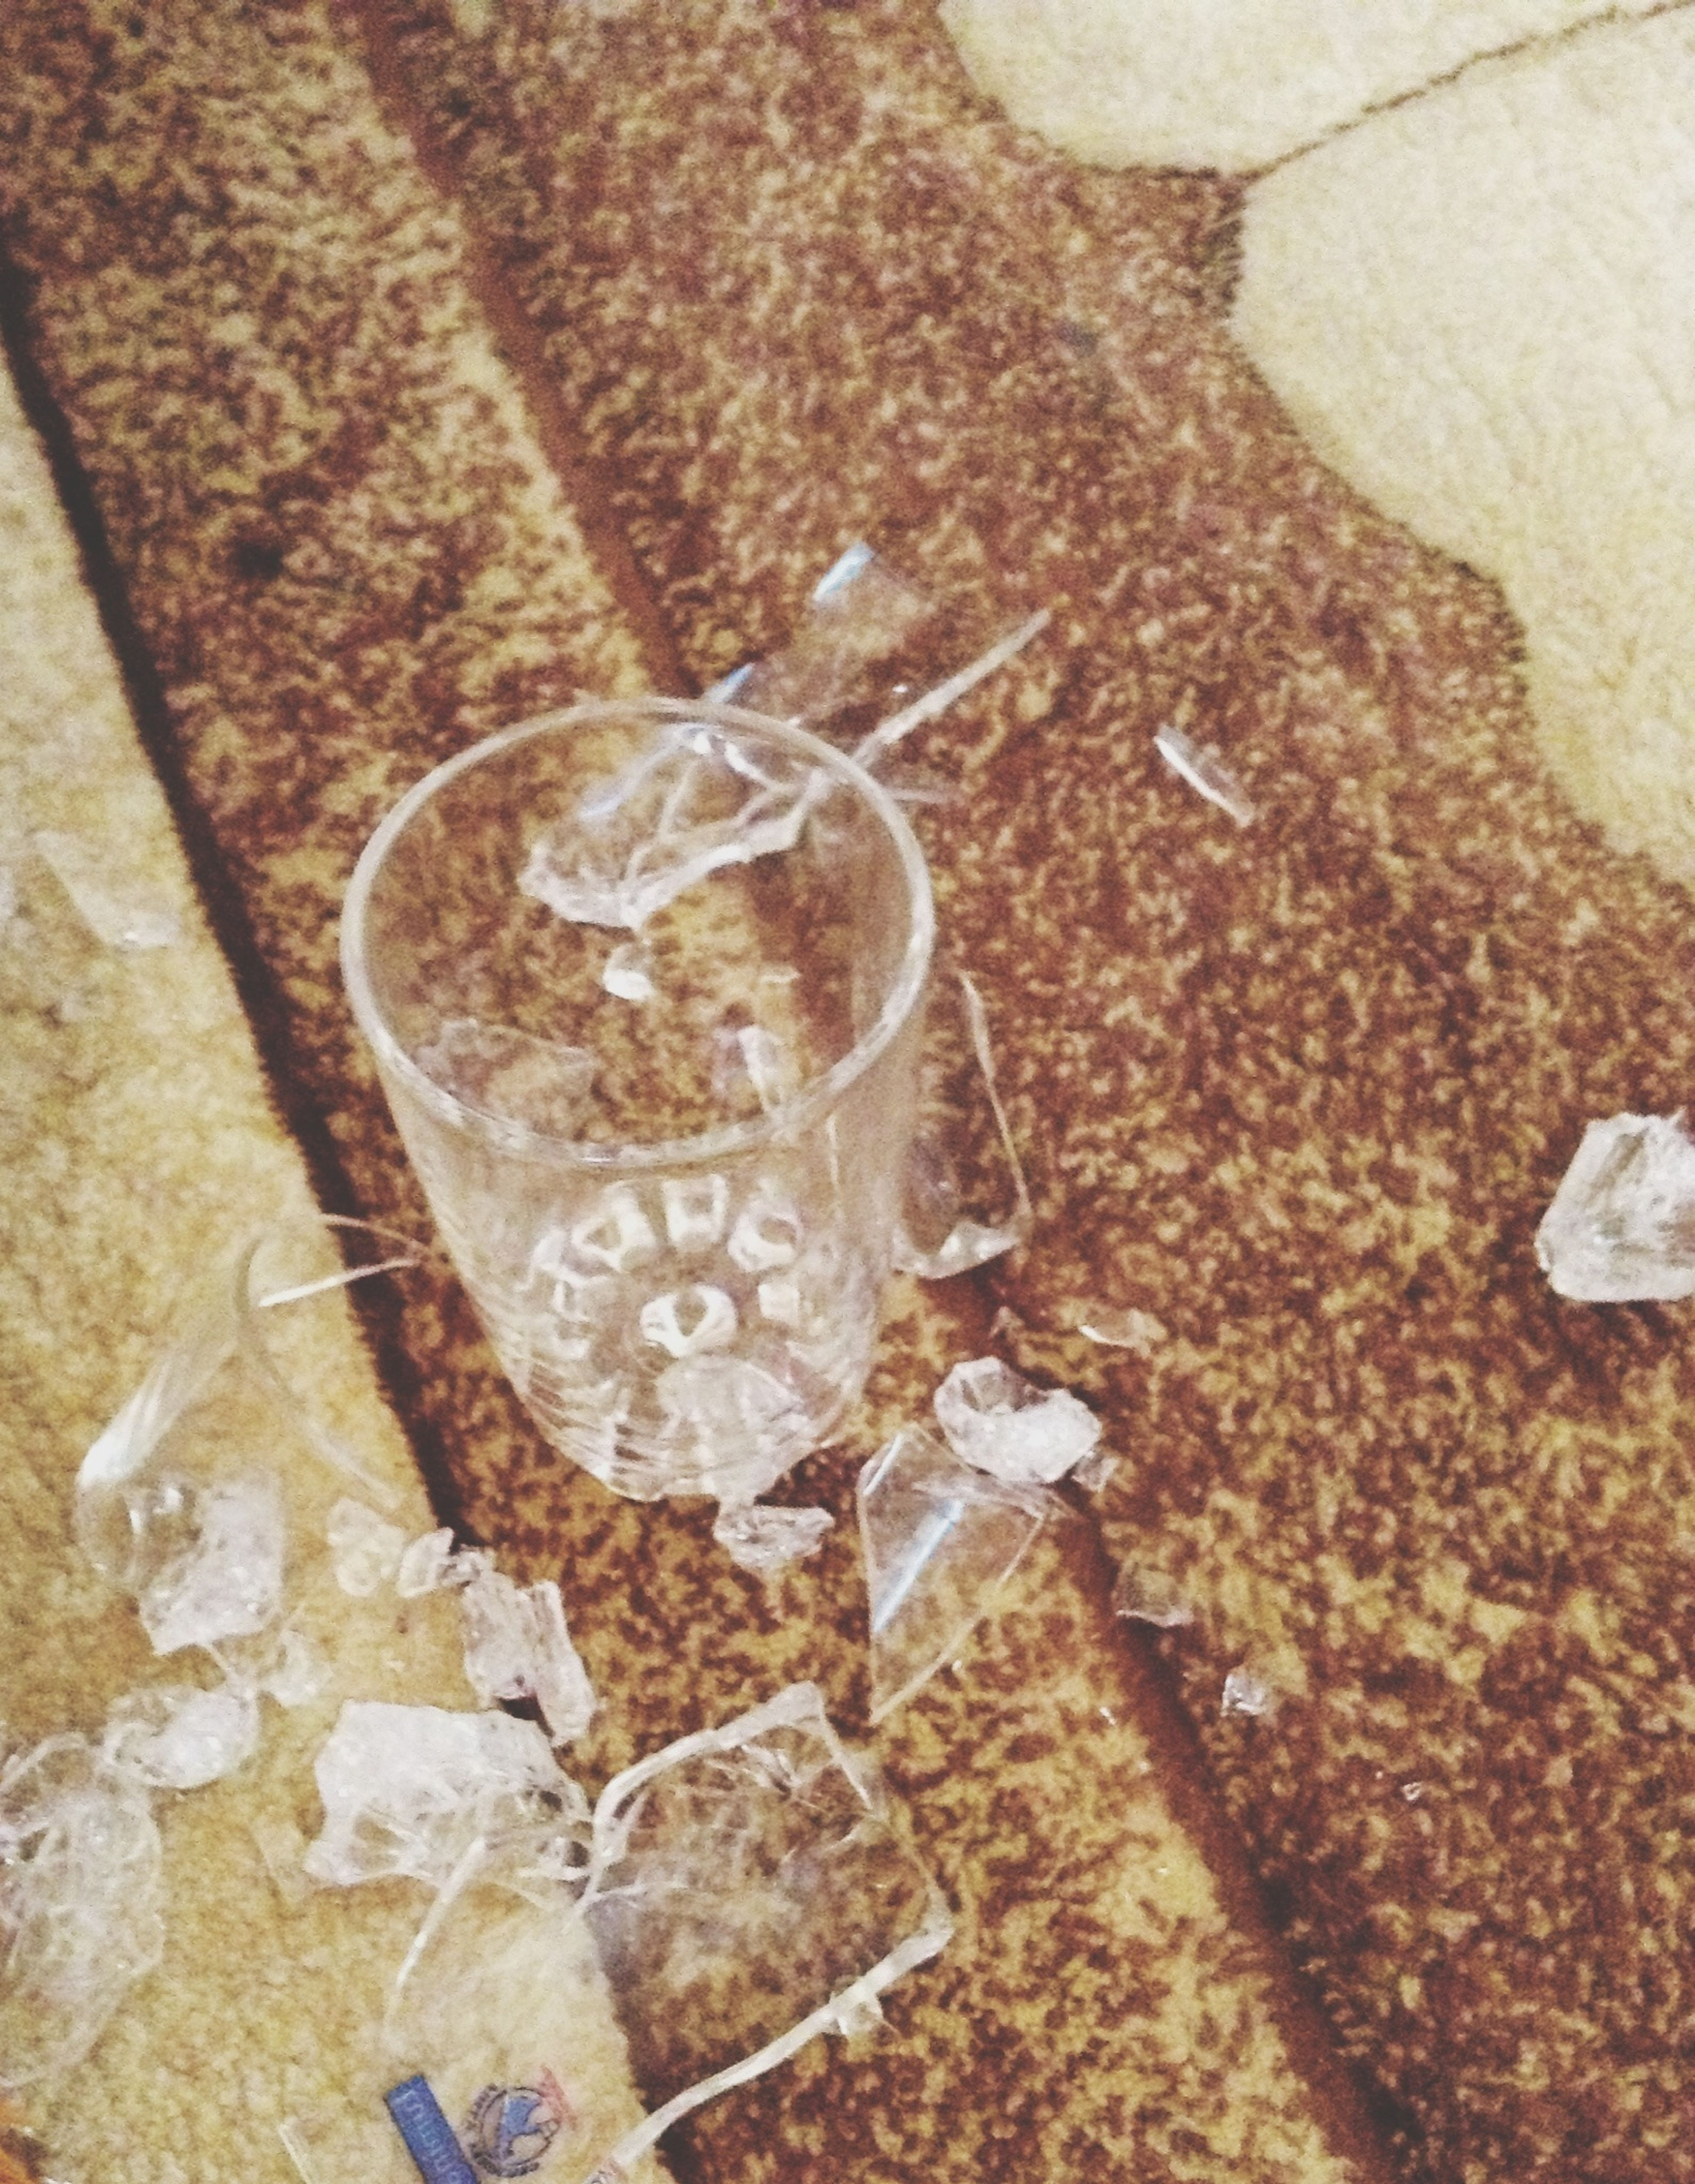 Broken Glass WTF Kids Done That Hate That